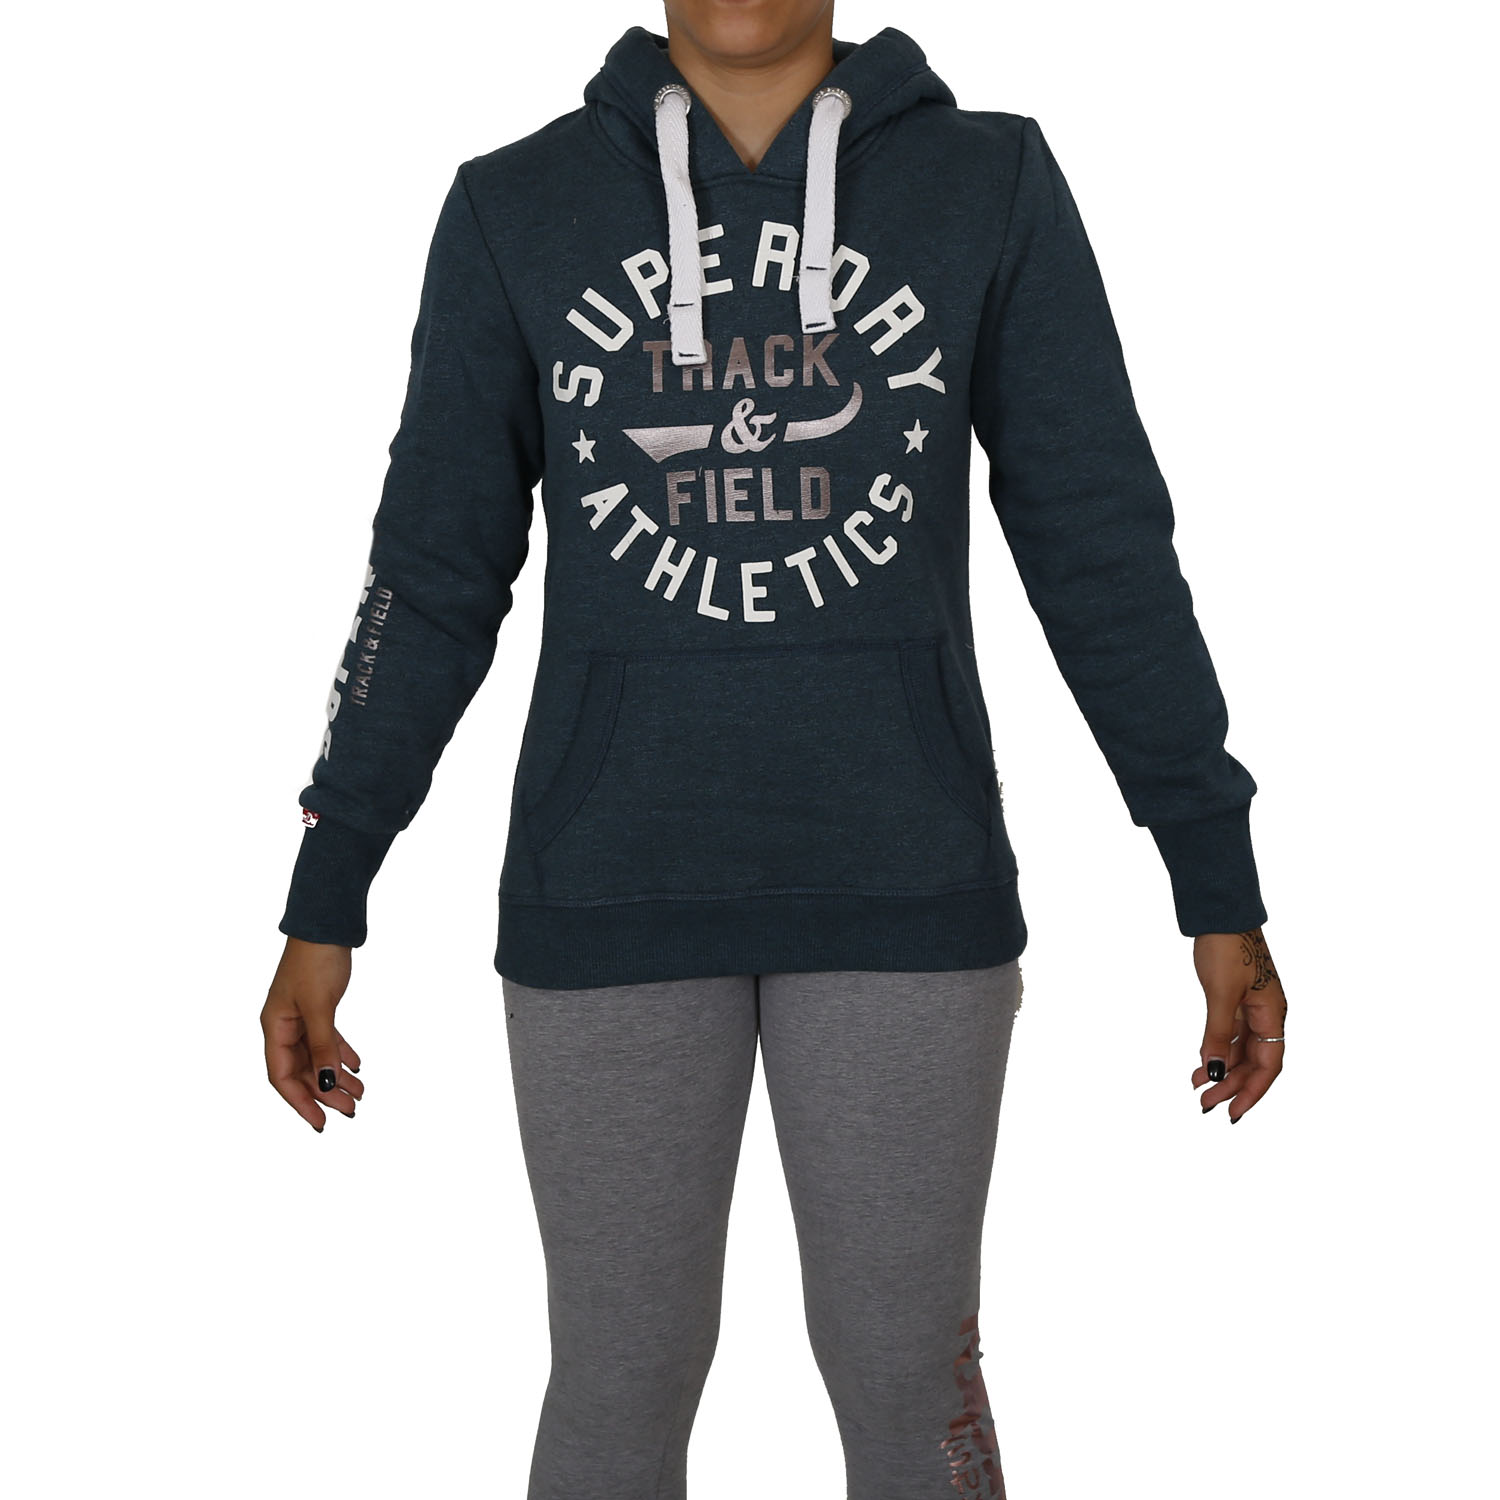 Superdry Track and Field Hoodie W ( G20017APF4-KW1 ) ρούχα    γυναίκα   sweaters   hoodies   ζακέτες